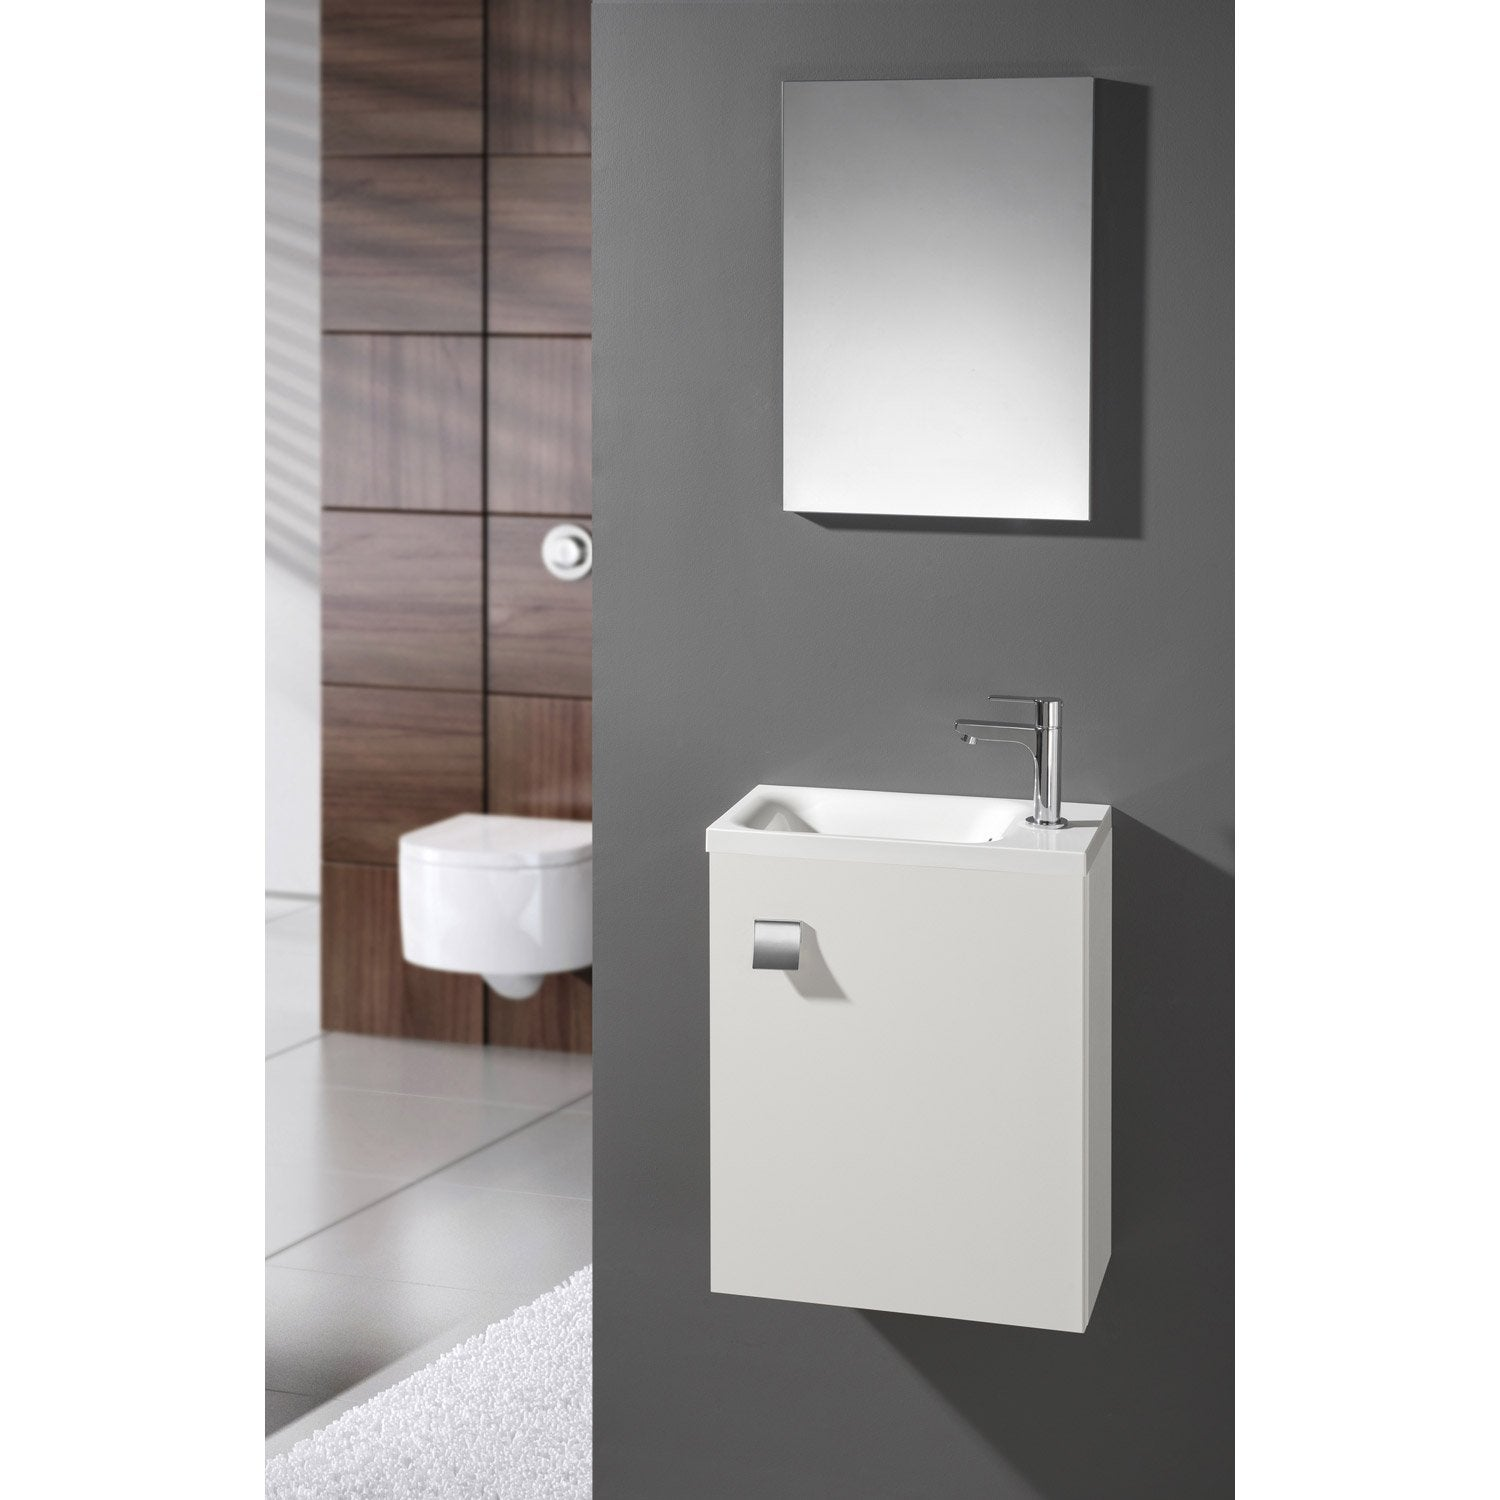 Porte papier toilette leroy merlin lk76 jornalagora for Meuble de wc leroy merlin